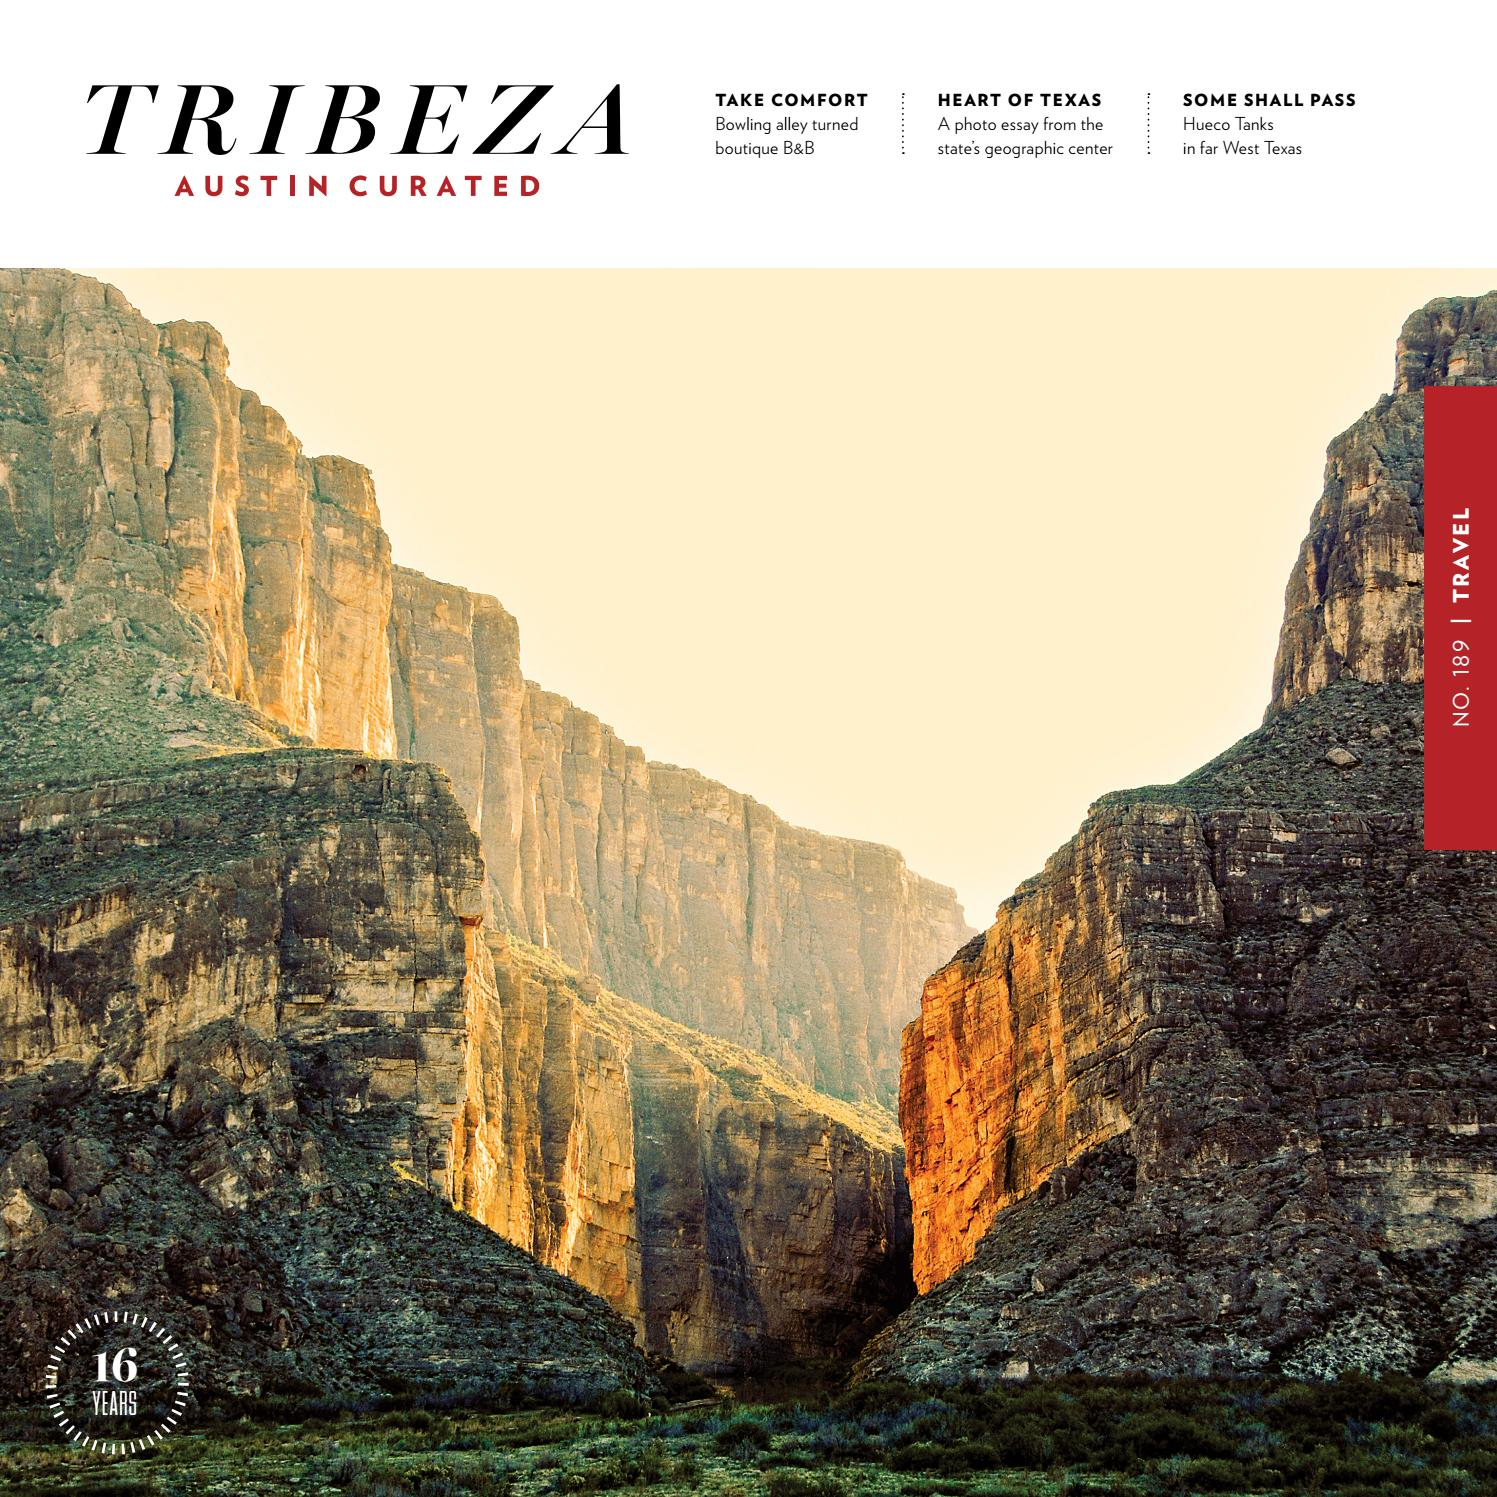 ee4395fc77ec3 TRIBEZA May 2017 by TRIBEZA Austin Curated - issuu